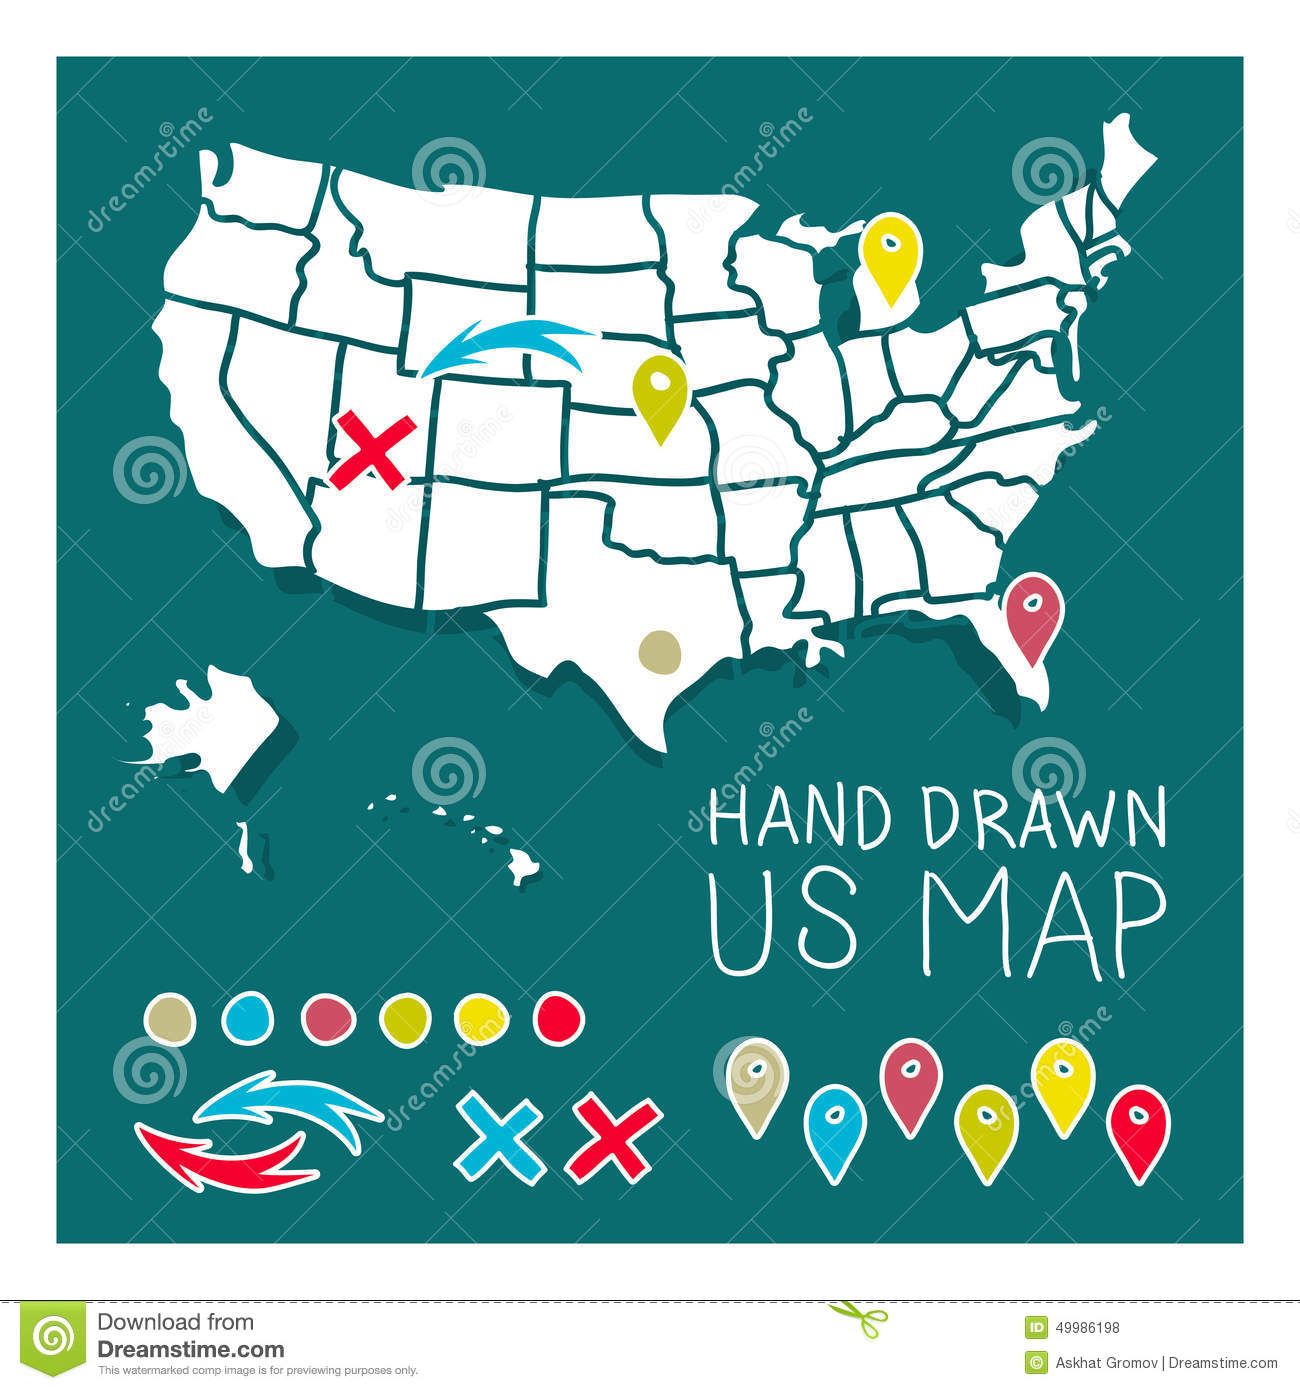 hand drawn us map with pins stock illustration illustration of